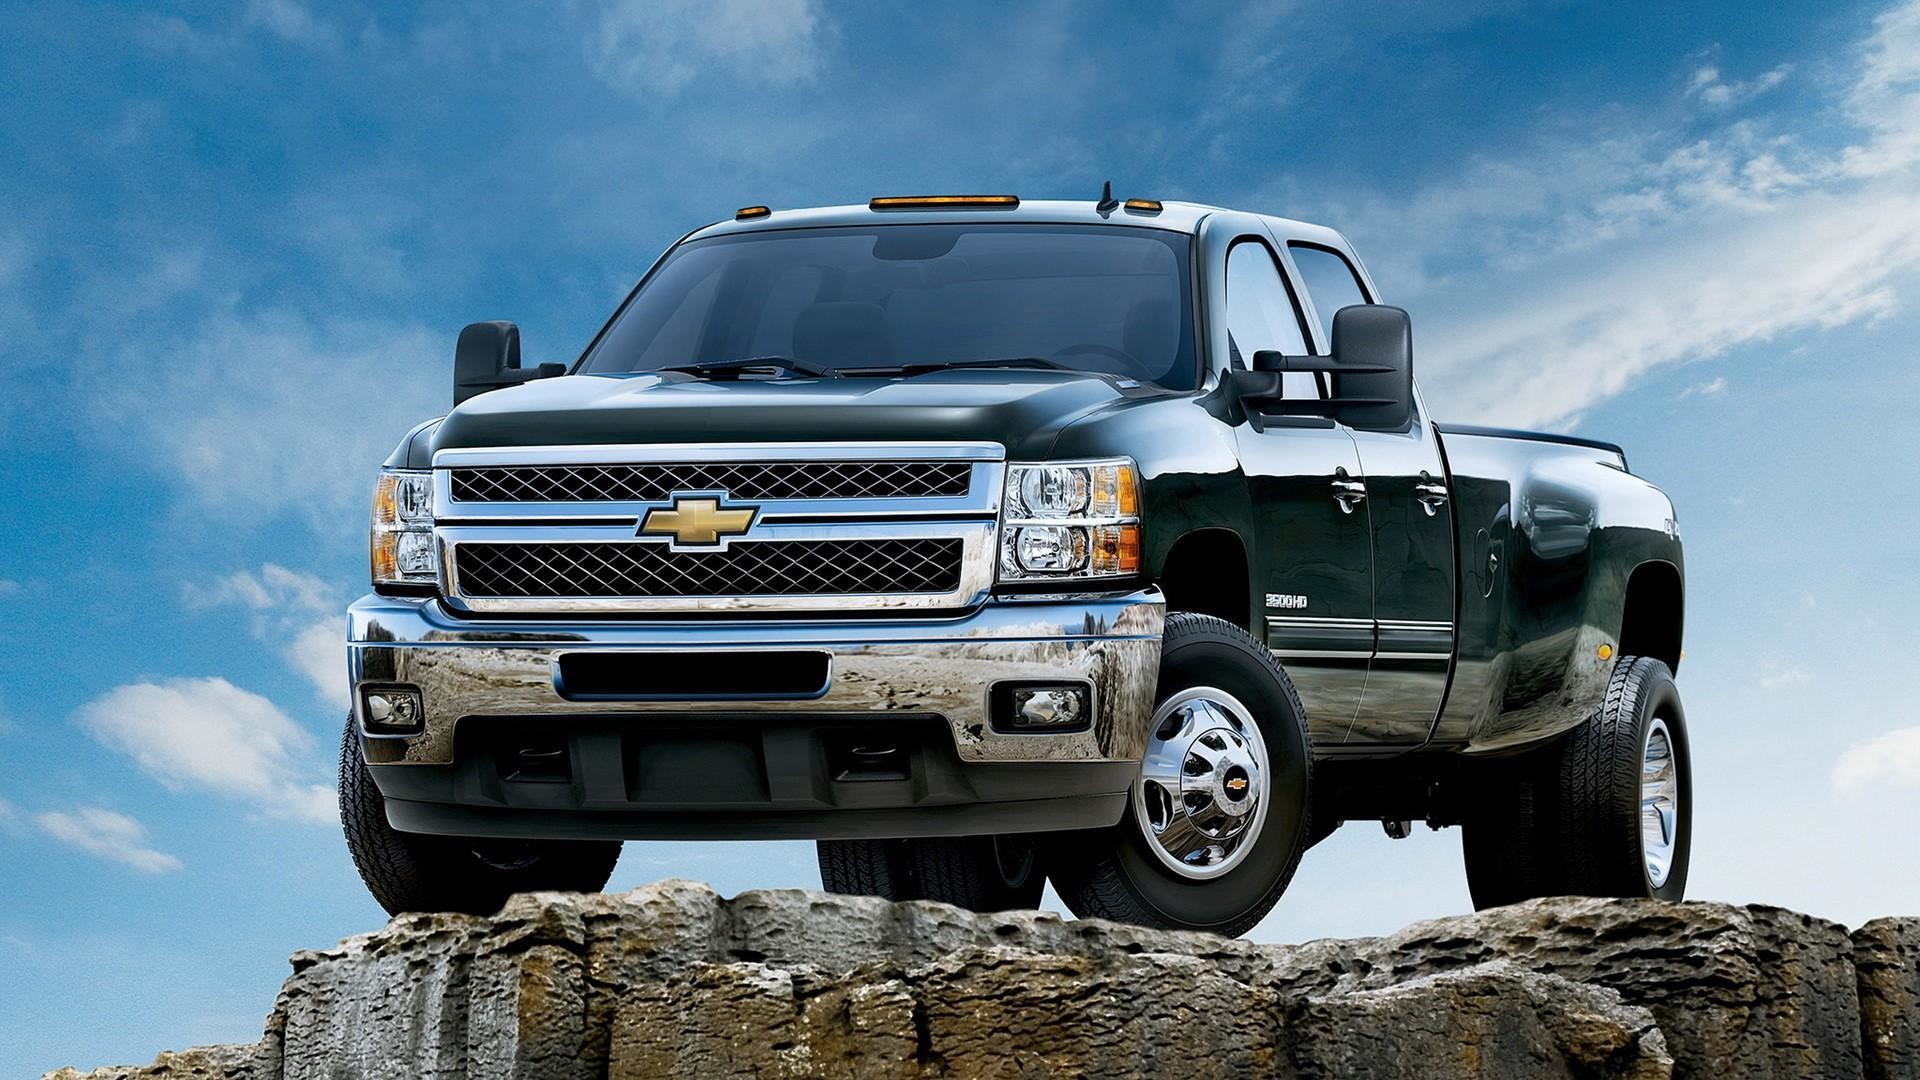 1920x1080 ... chevy truck hd wallpaper wallpapersafari ...